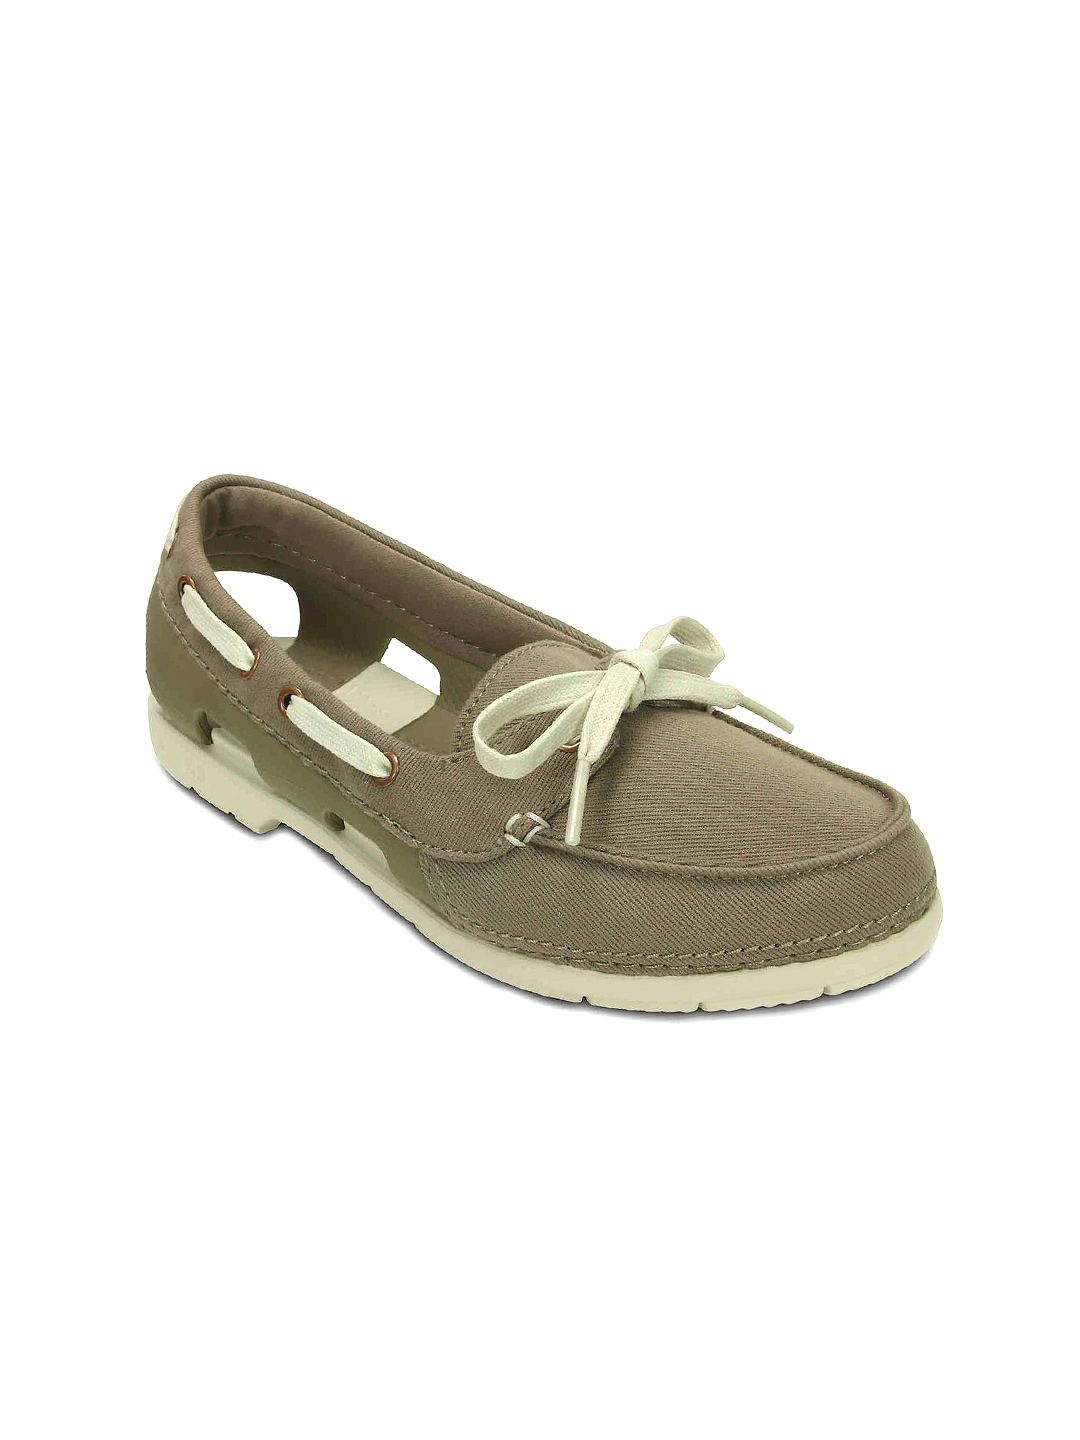 Crocs Women Olive Green Casual Shoes price Myntra Loafers  : 11456819511026 Crocs Women Olive Green Boat Shoes 3711456819510668 1mini from compare.buyhatke.com size 1080 x 1440 jpeg 186kB